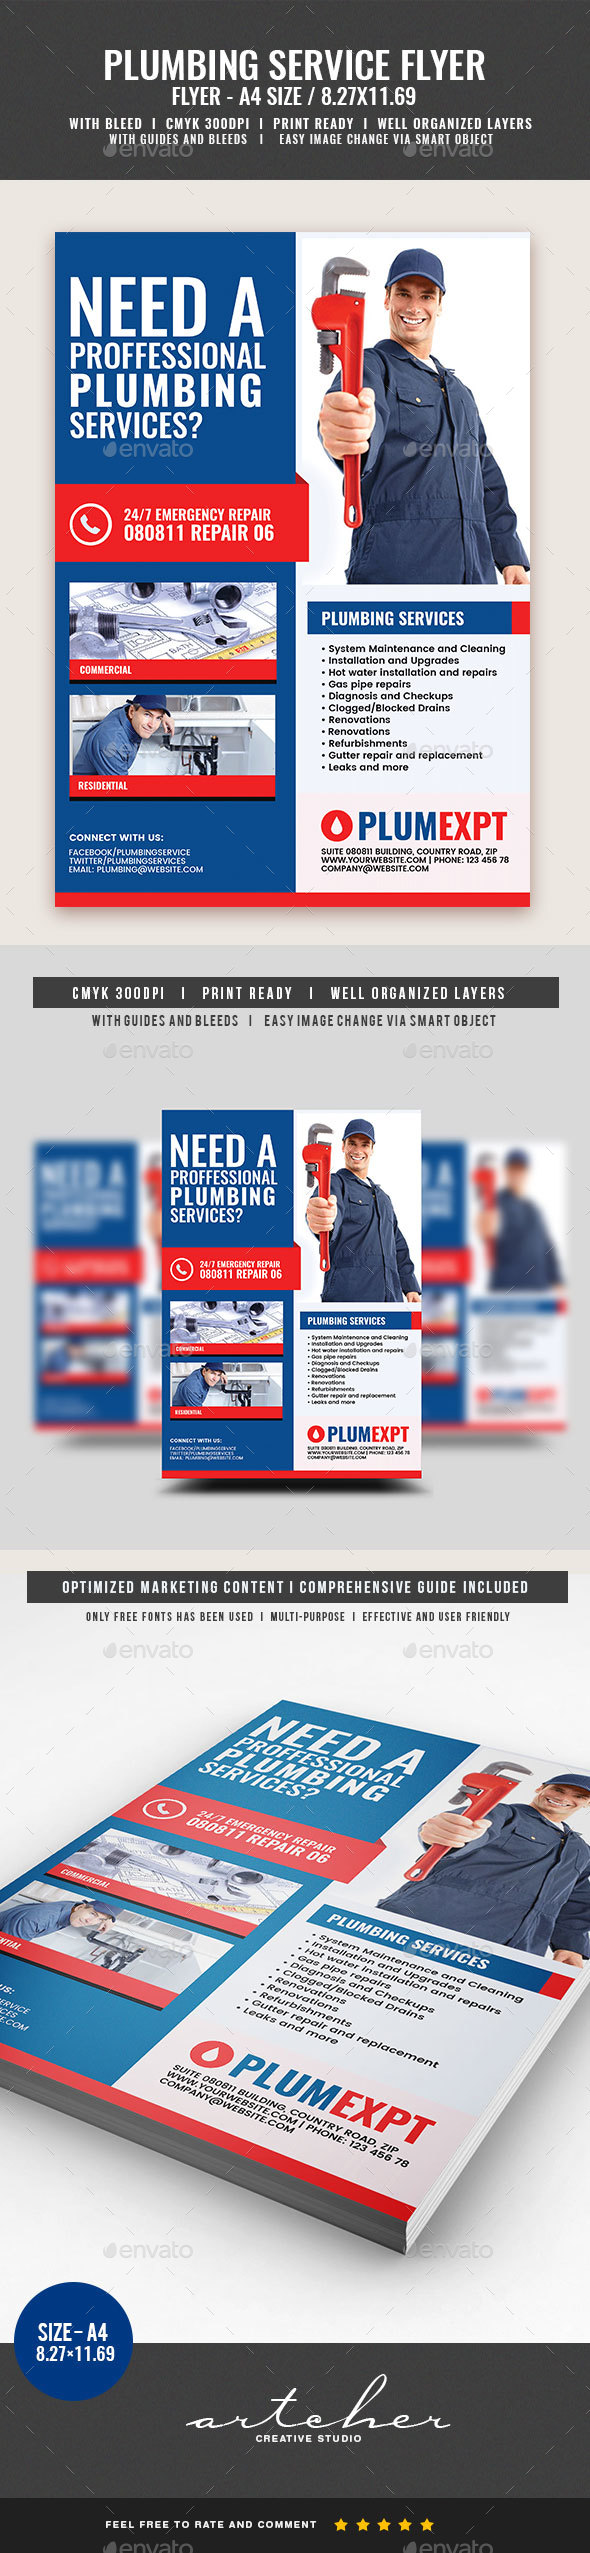 Professional Plumbing Service - Corporate Flyers